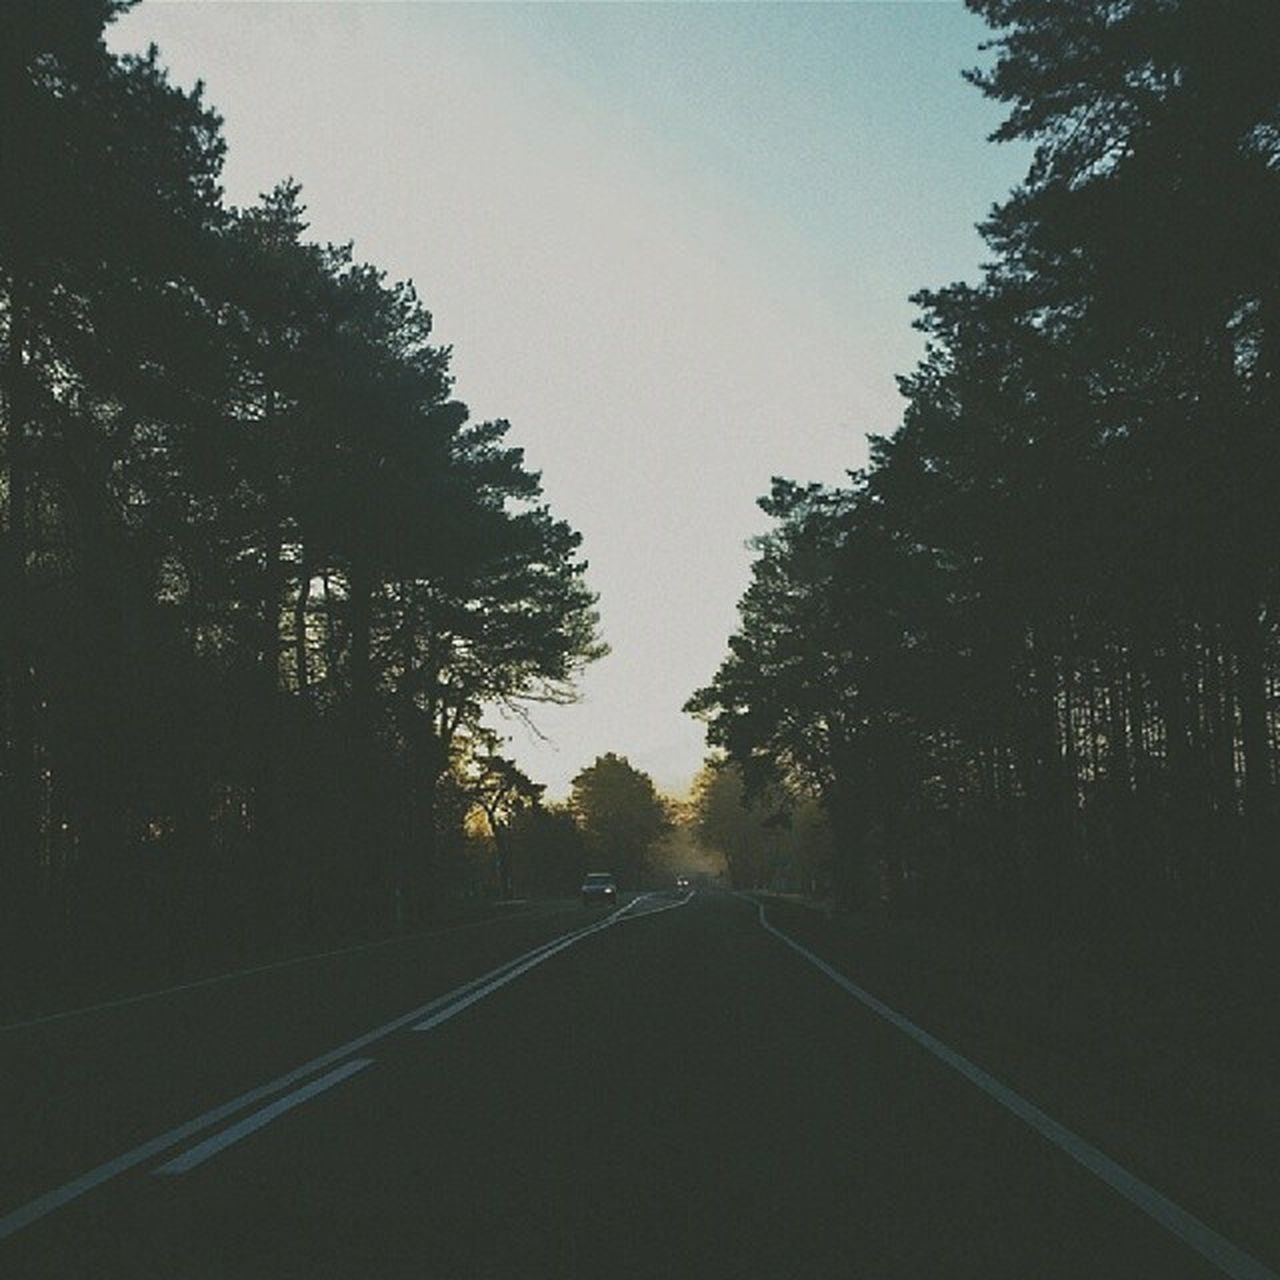 tree, road, the way forward, diminishing perspective, straight, transportation, no people, silhouette, nature, outdoors, day, landscape, growth, sky, clear sky